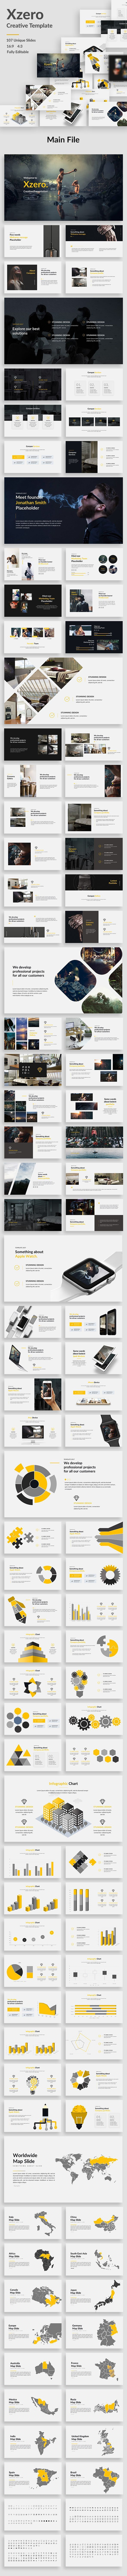 Xzero - Creative Powerpoint Template